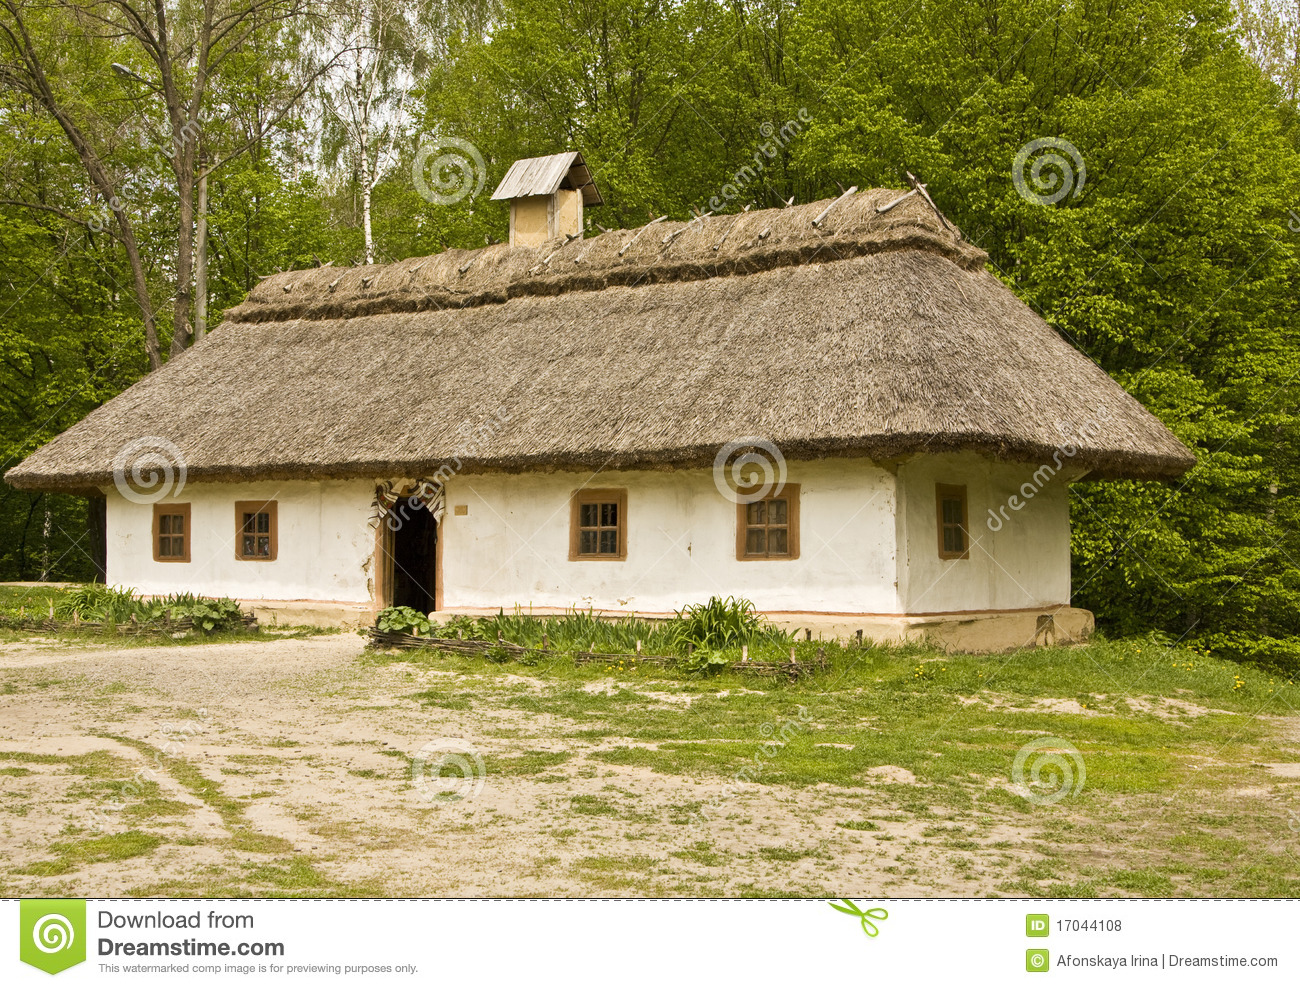 map of vojvodina with Royalty Free Stock Photos Village House Image17044108 on From 1918 To 1991 Yugoslavia Was A United Country Made as well Jugos likewise 369106 together with Viewtopic besides File Vojvodina languages1931.